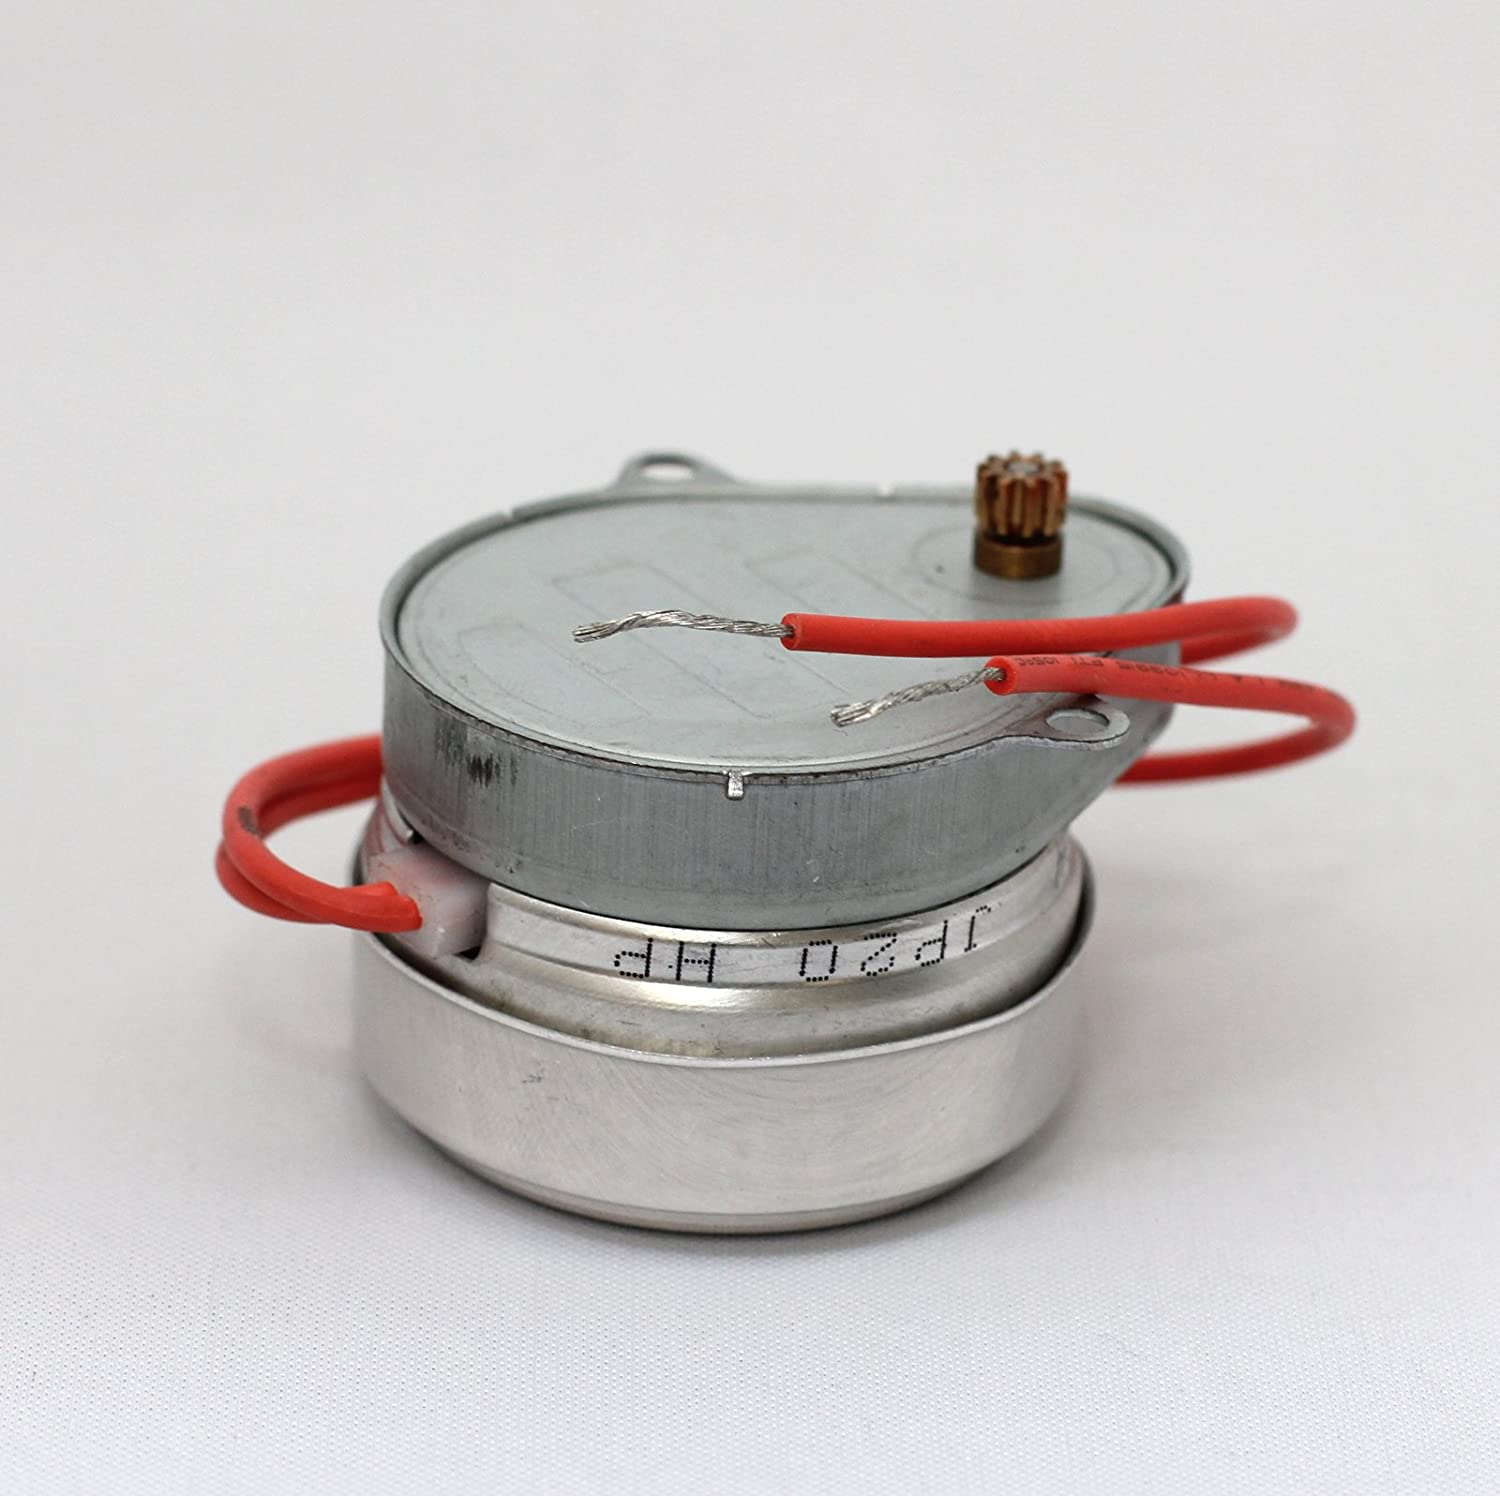 Honeywell V4043 Replacement Synchronous Motor For Motorised Valve Couk O View Topic Testing Zone And Thermostat Amazon Diy Tools